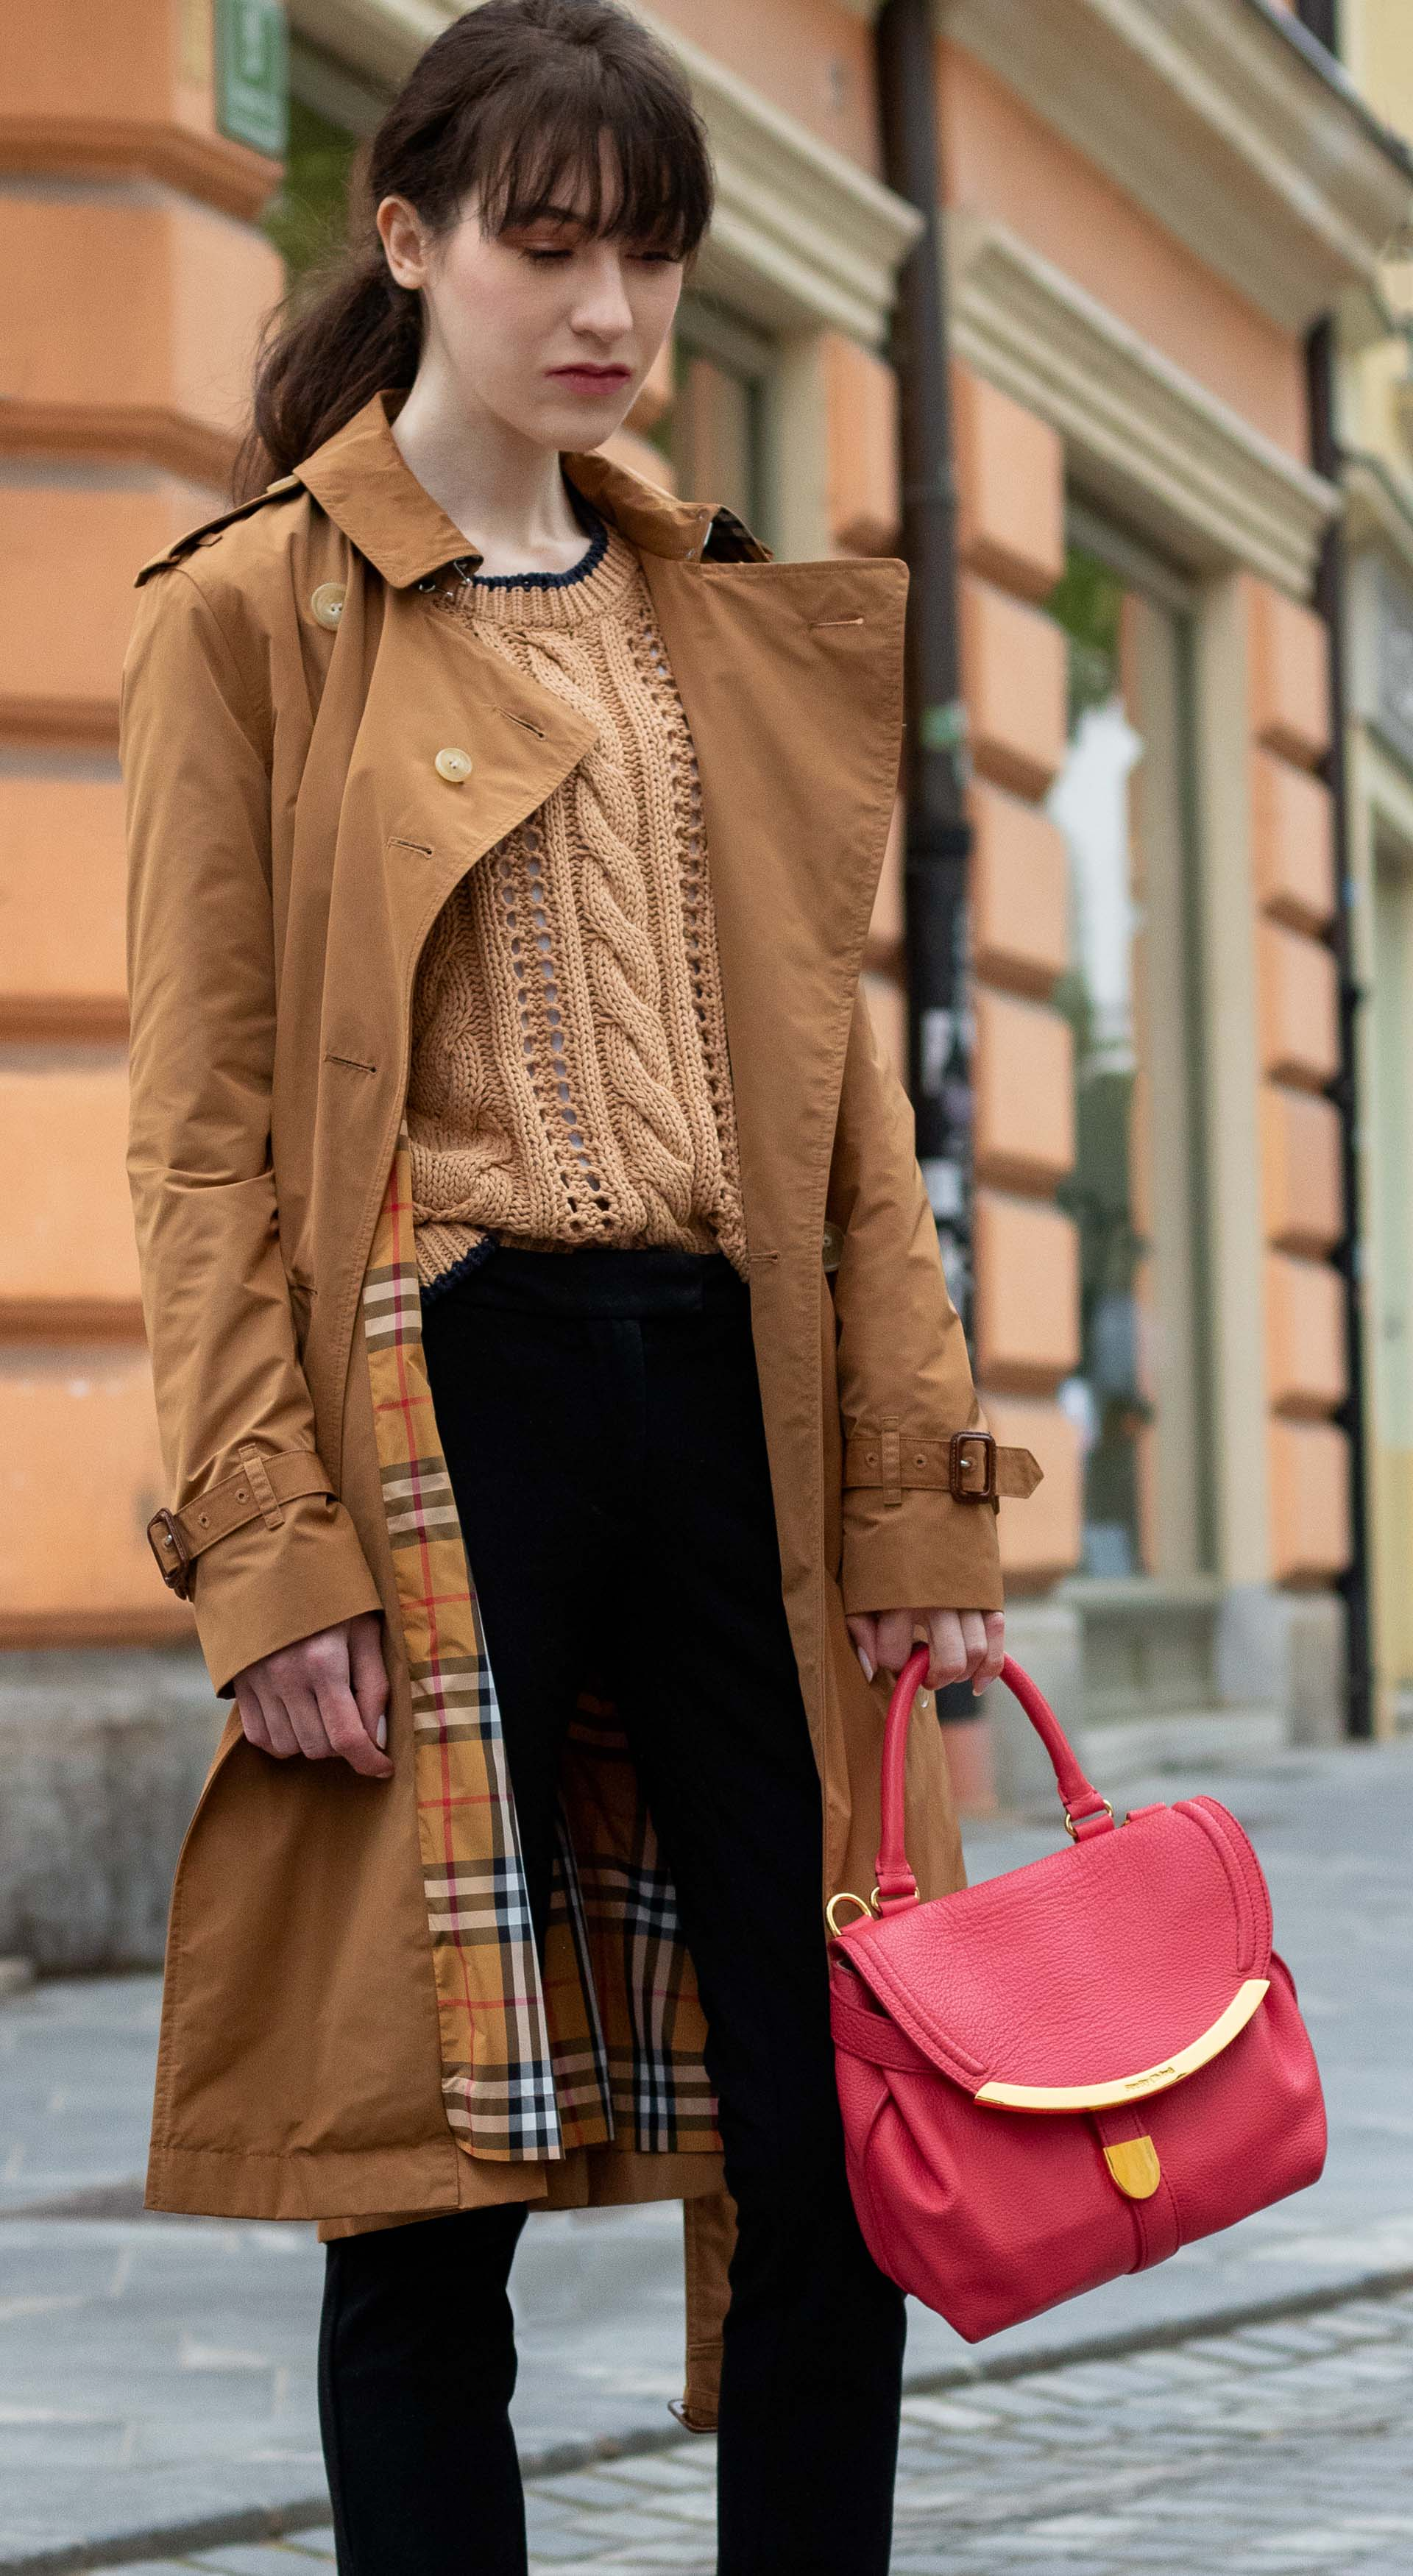 Must follow Slovenian Fashion Blogger Veronika Lipar of Brunette from Wall Street wearing camel Burberry trench coat Mango cable knit sweater black trousers pink top handle bag low ponytail bangs going to work